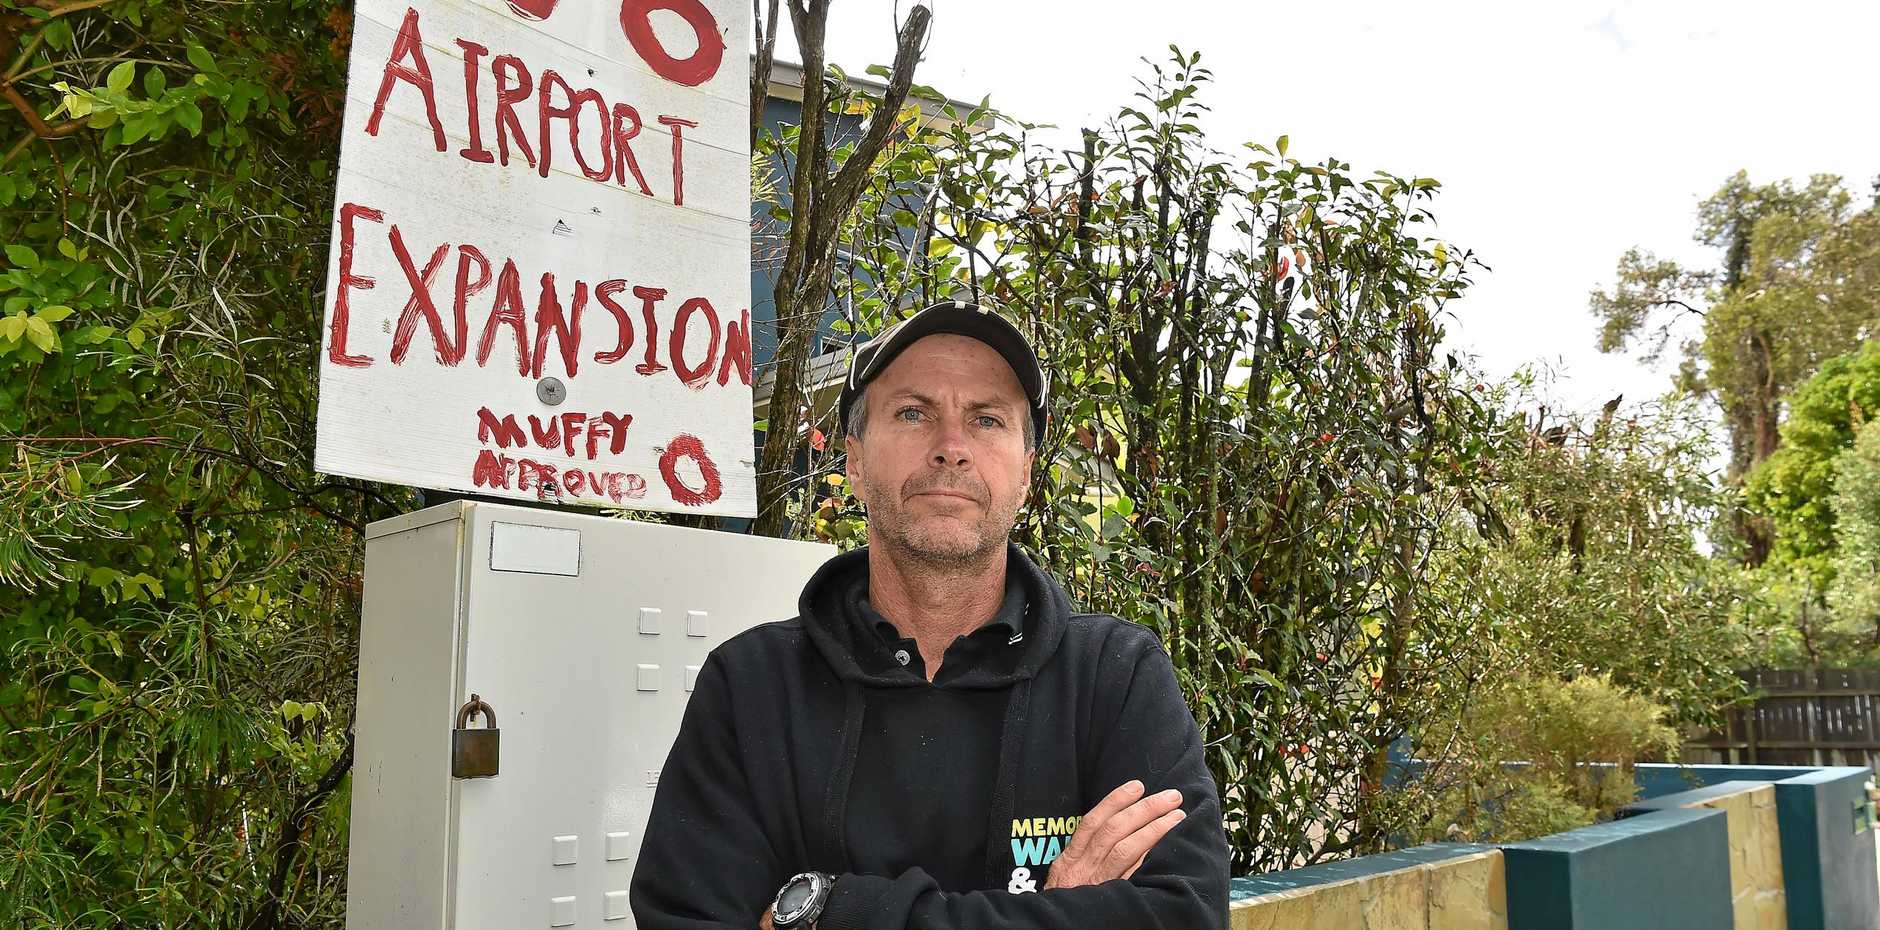 Cleveland Maltman is considering selling his Mudjimba home as he believes its value will drop with the new airport runway.